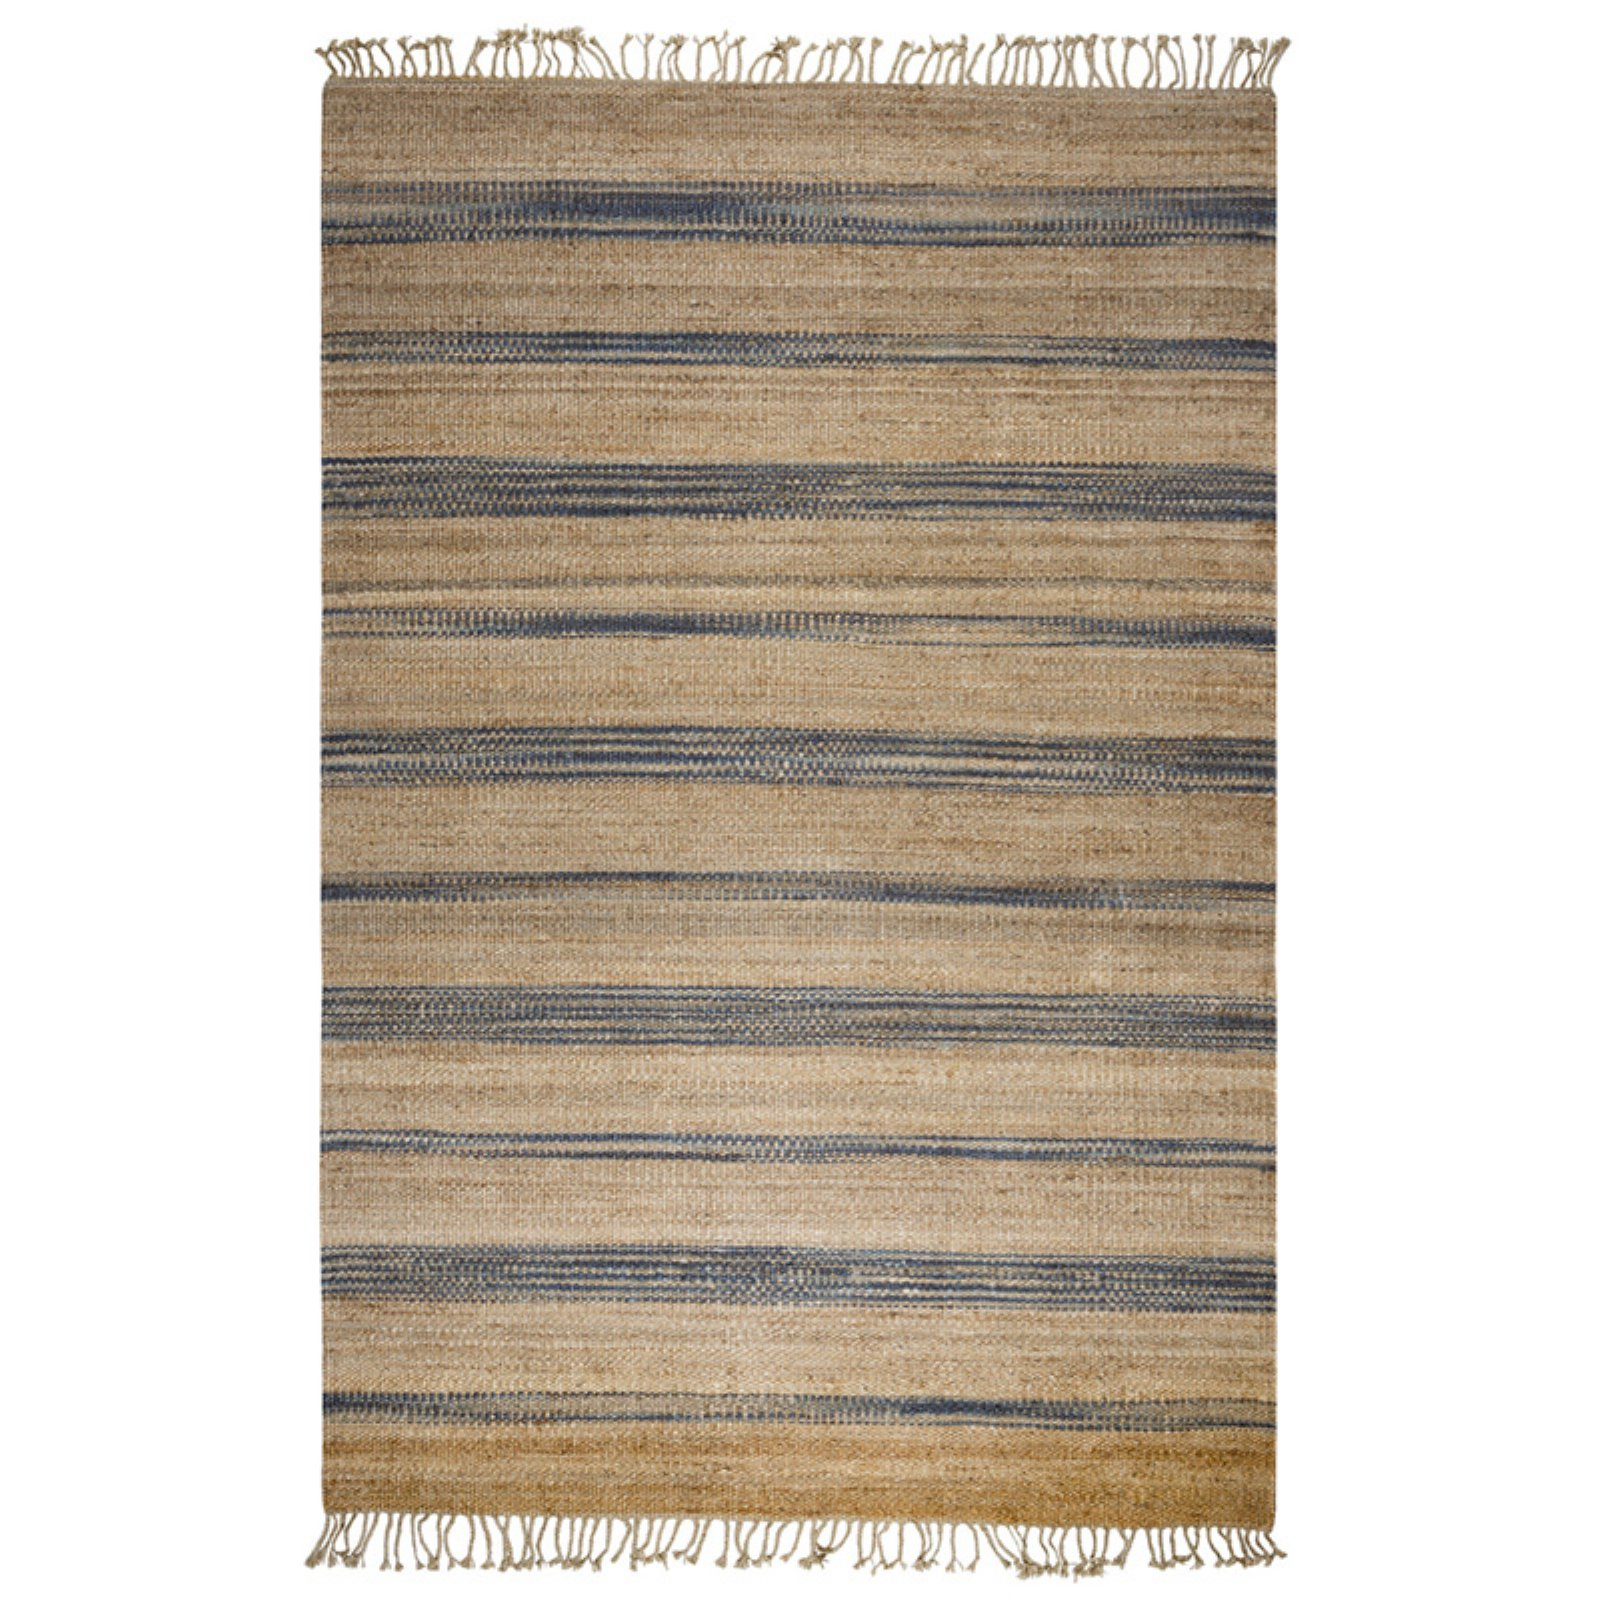 Rizzy Home Natural Rug In Jute 5'x8'